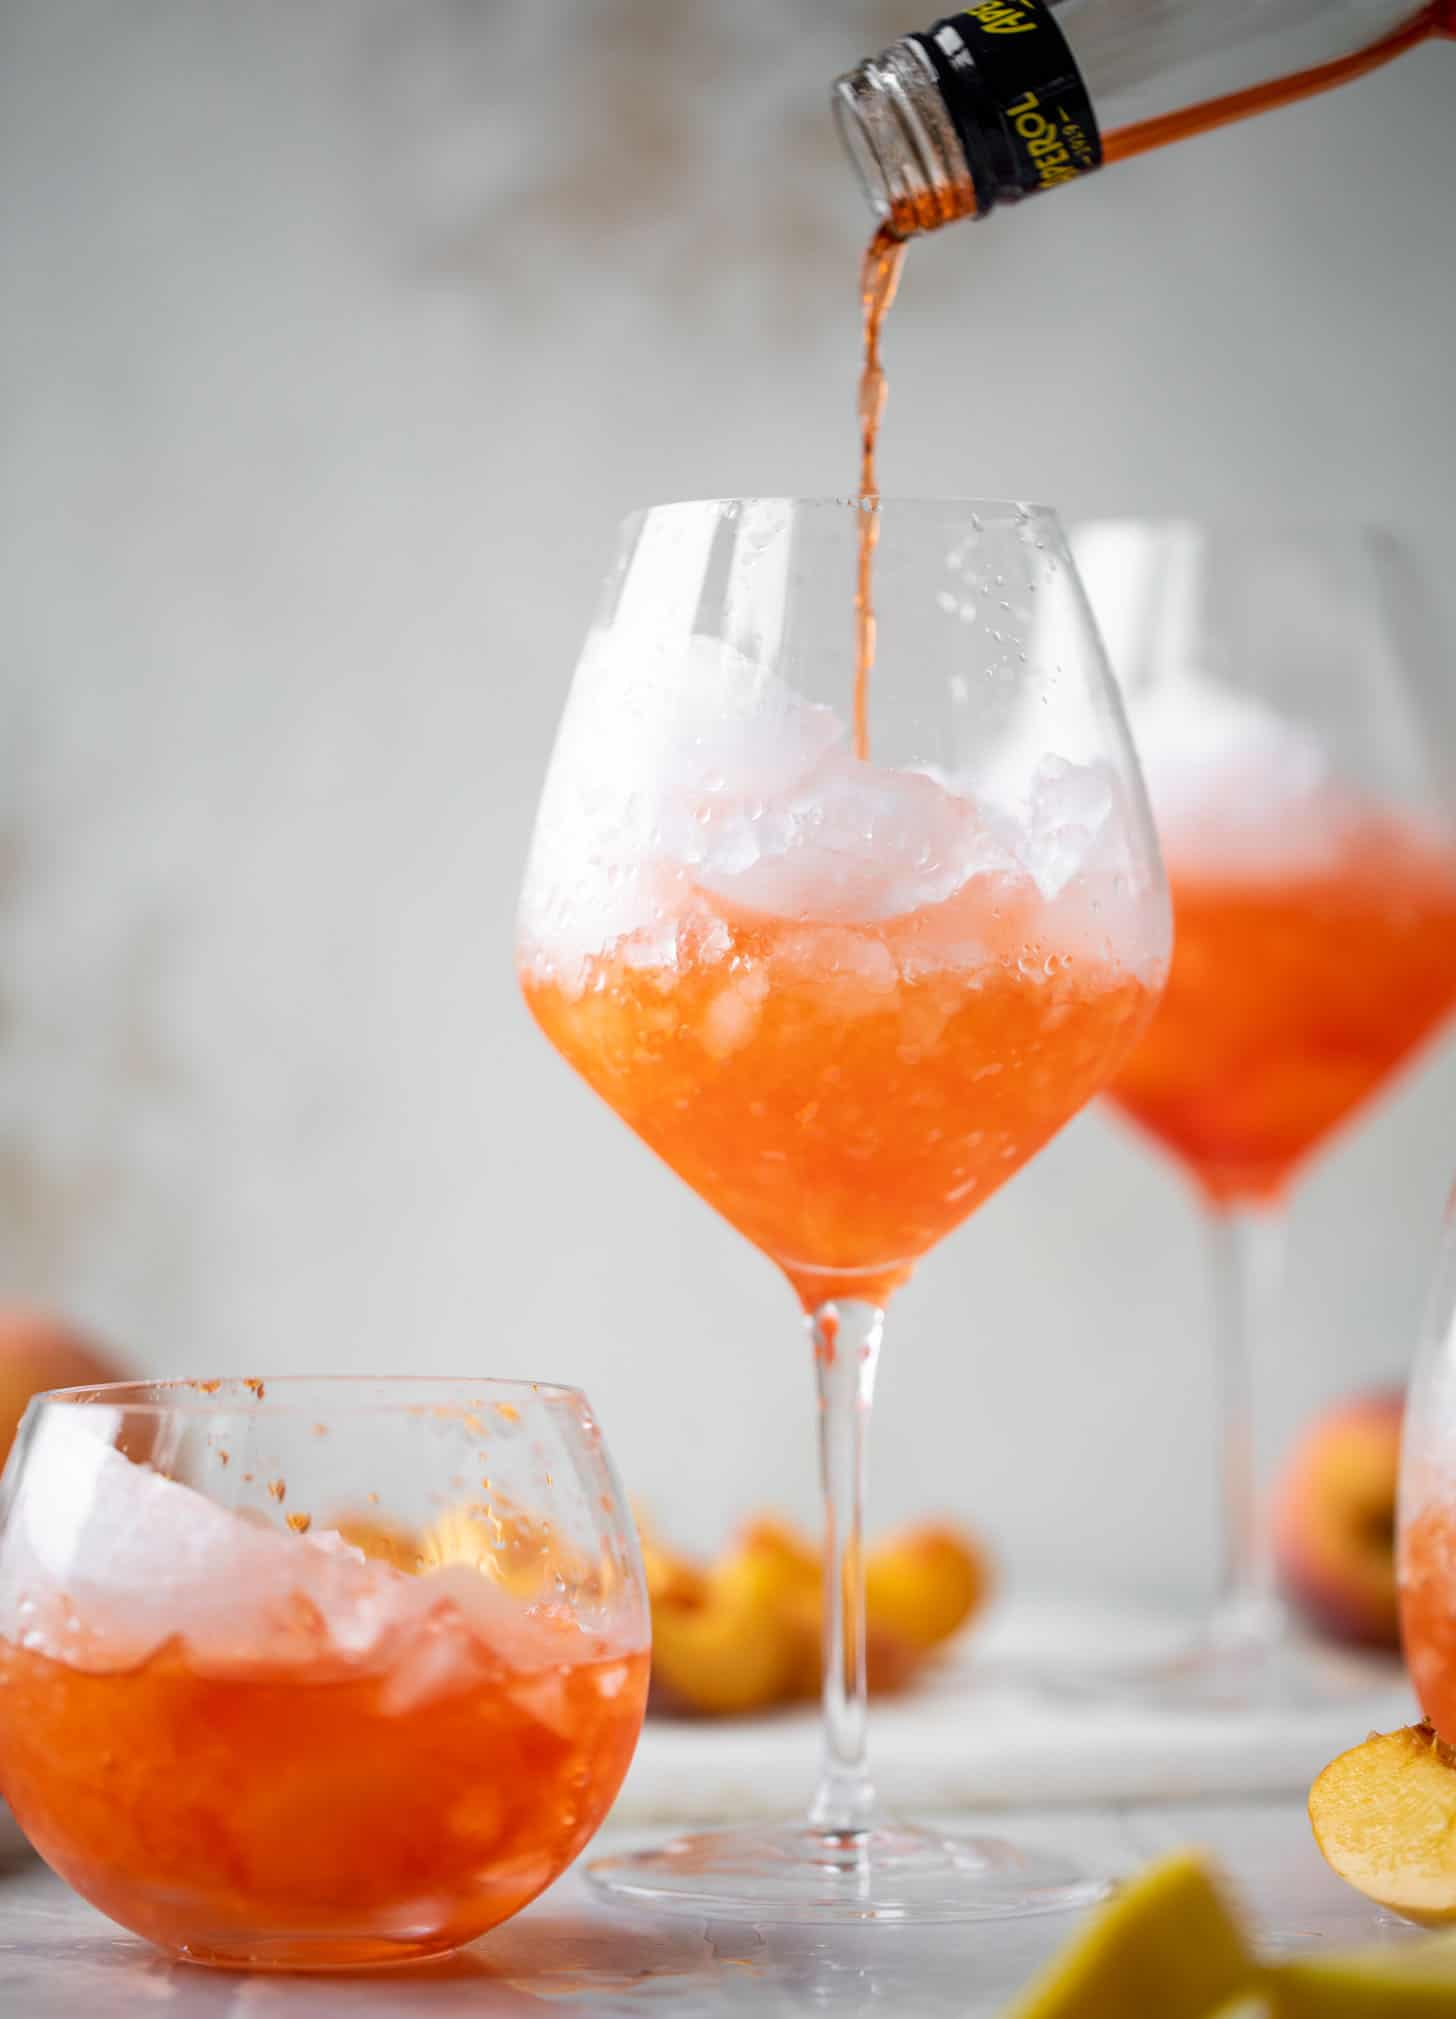 pouring aperol over crushed ice